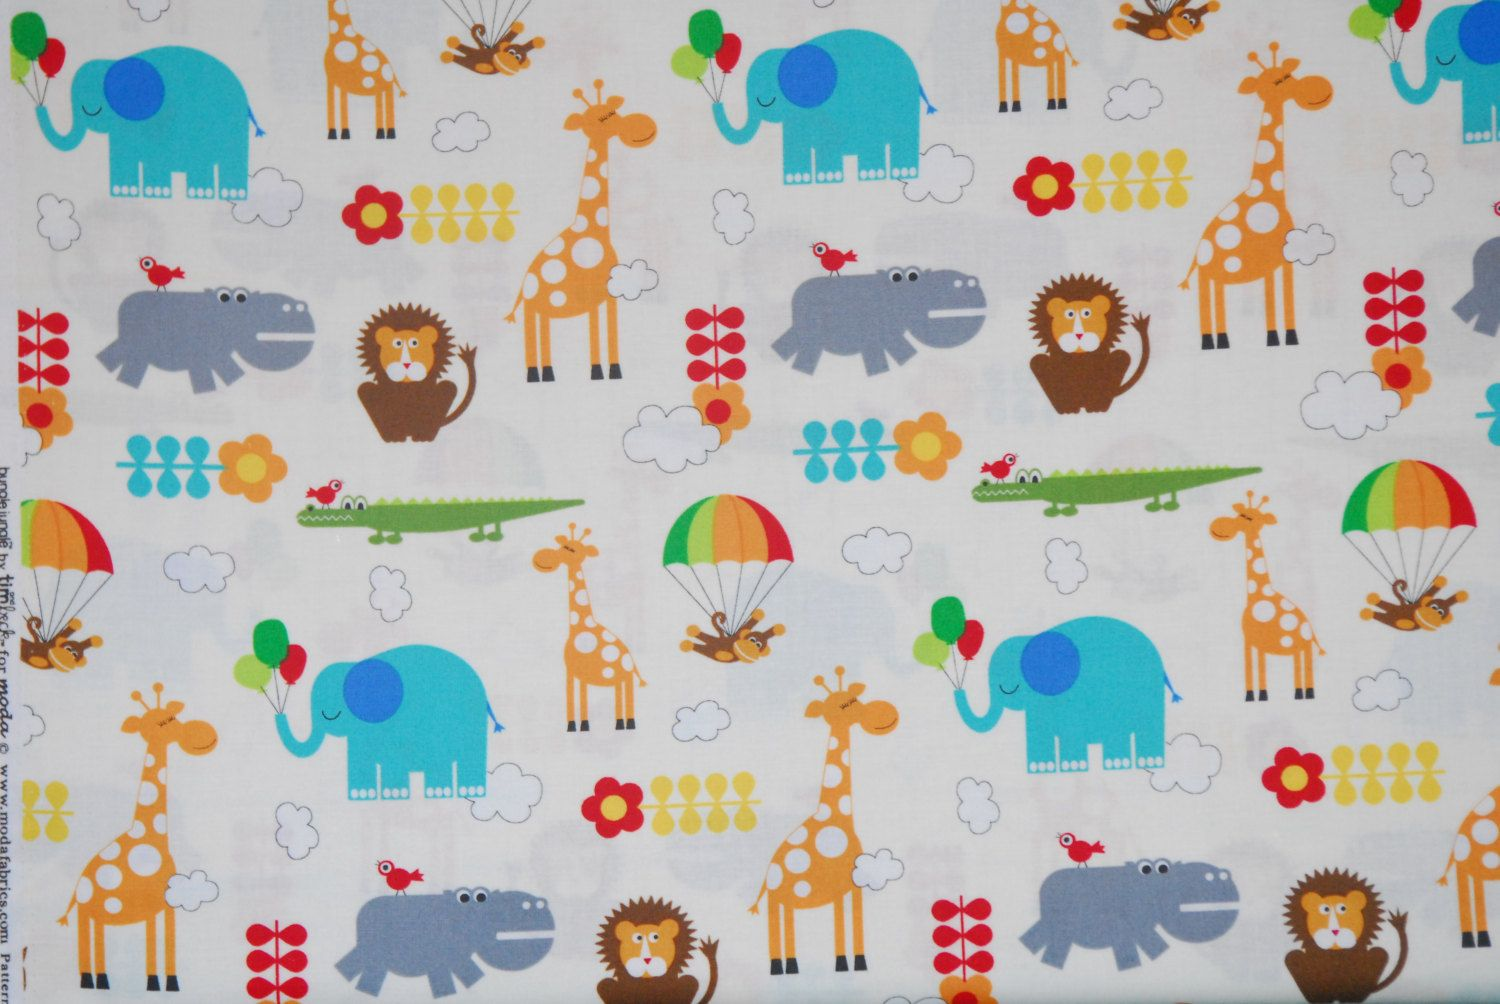 SALE 25% OFF Bungle Jungle Animal Fabric by tim and beck for Moda 100 Percent Quality Cotton Pattern 39501 Ivory - $2.24 USD